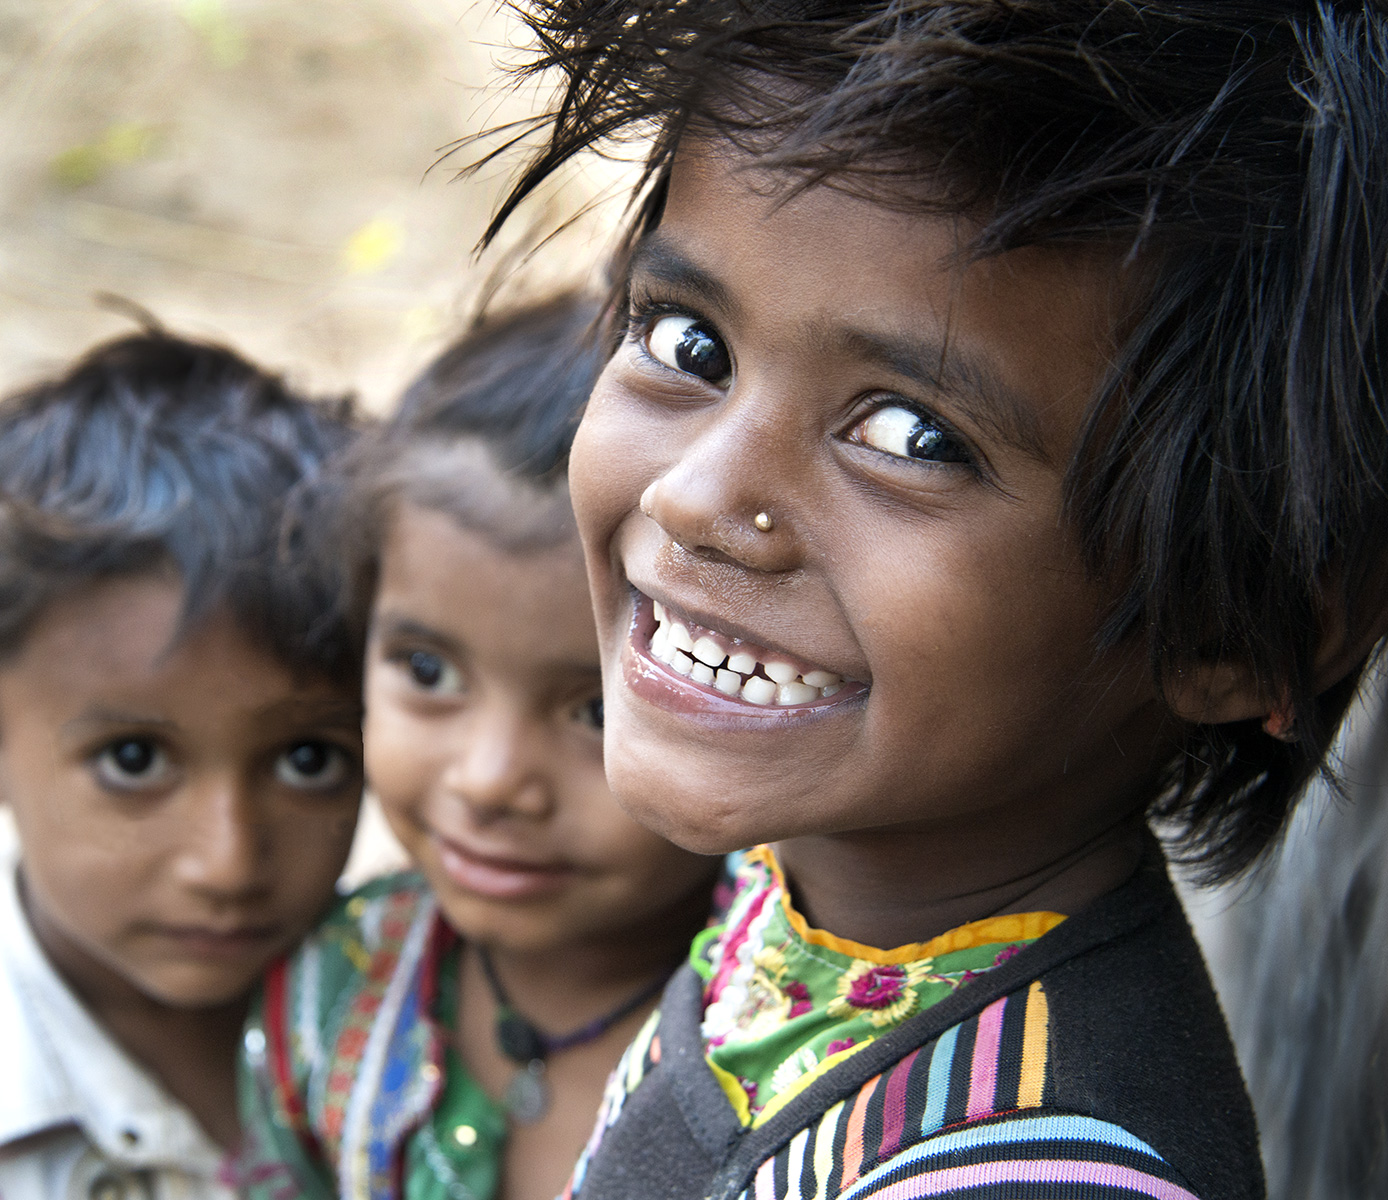 Smiling-girl-India1-17-3322